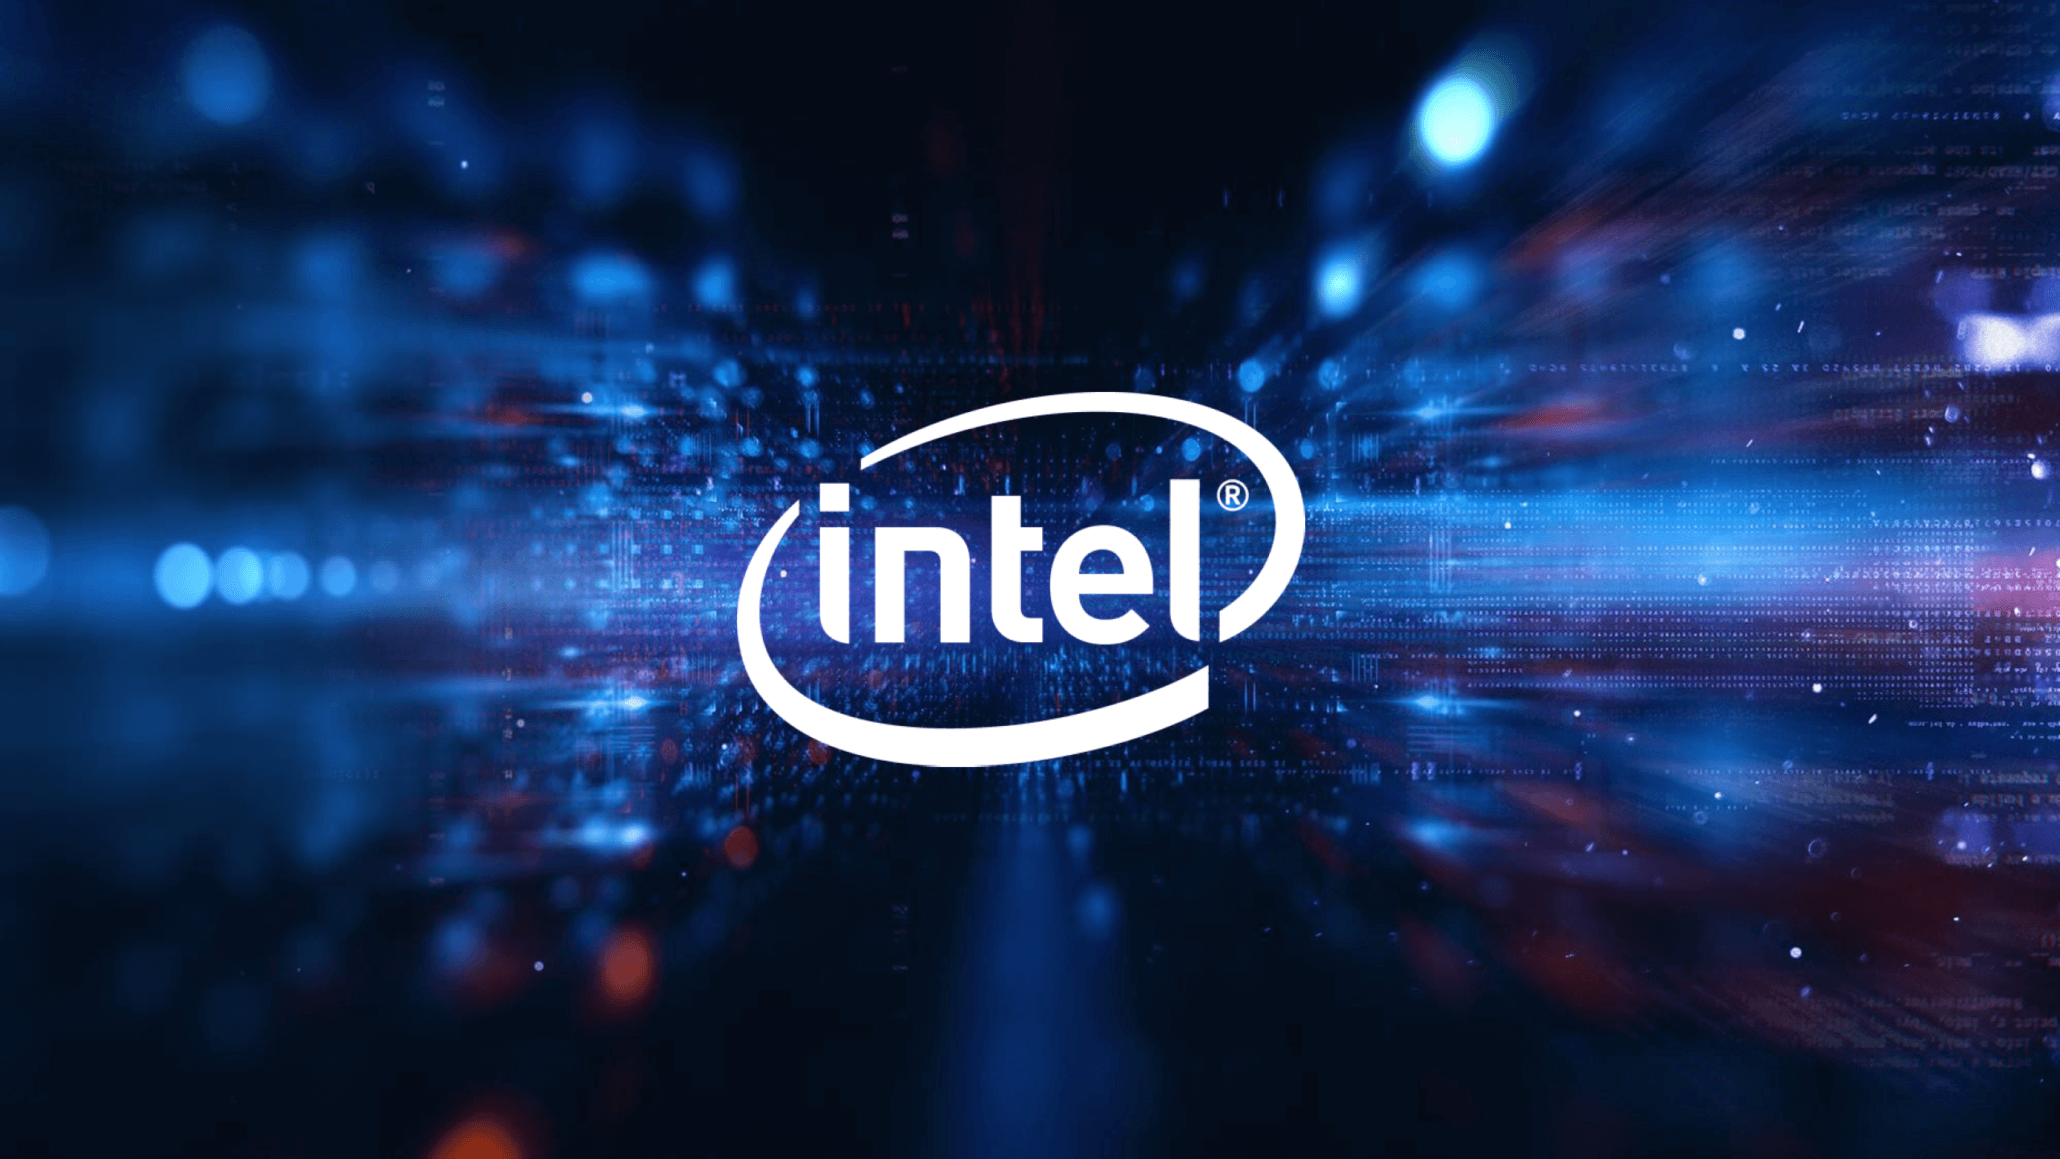 Qualcomm's tactics forced it out of modem chip market: Intel